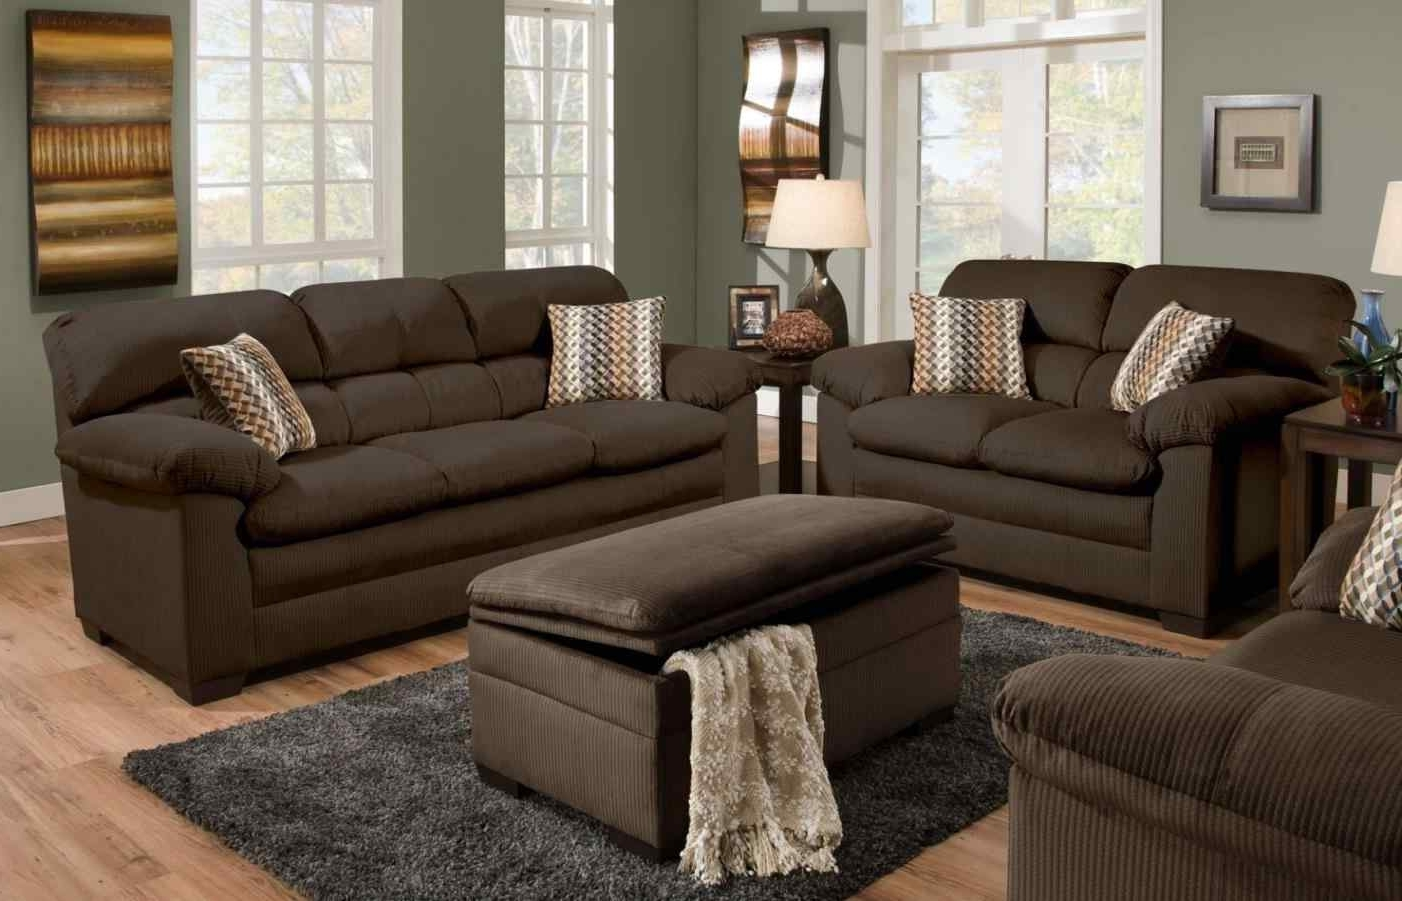 Oversized Sofa Chairs Pertaining To Favorite The Images Collection Of Sectional Leather Living Room Furniture (View 10 of 15)